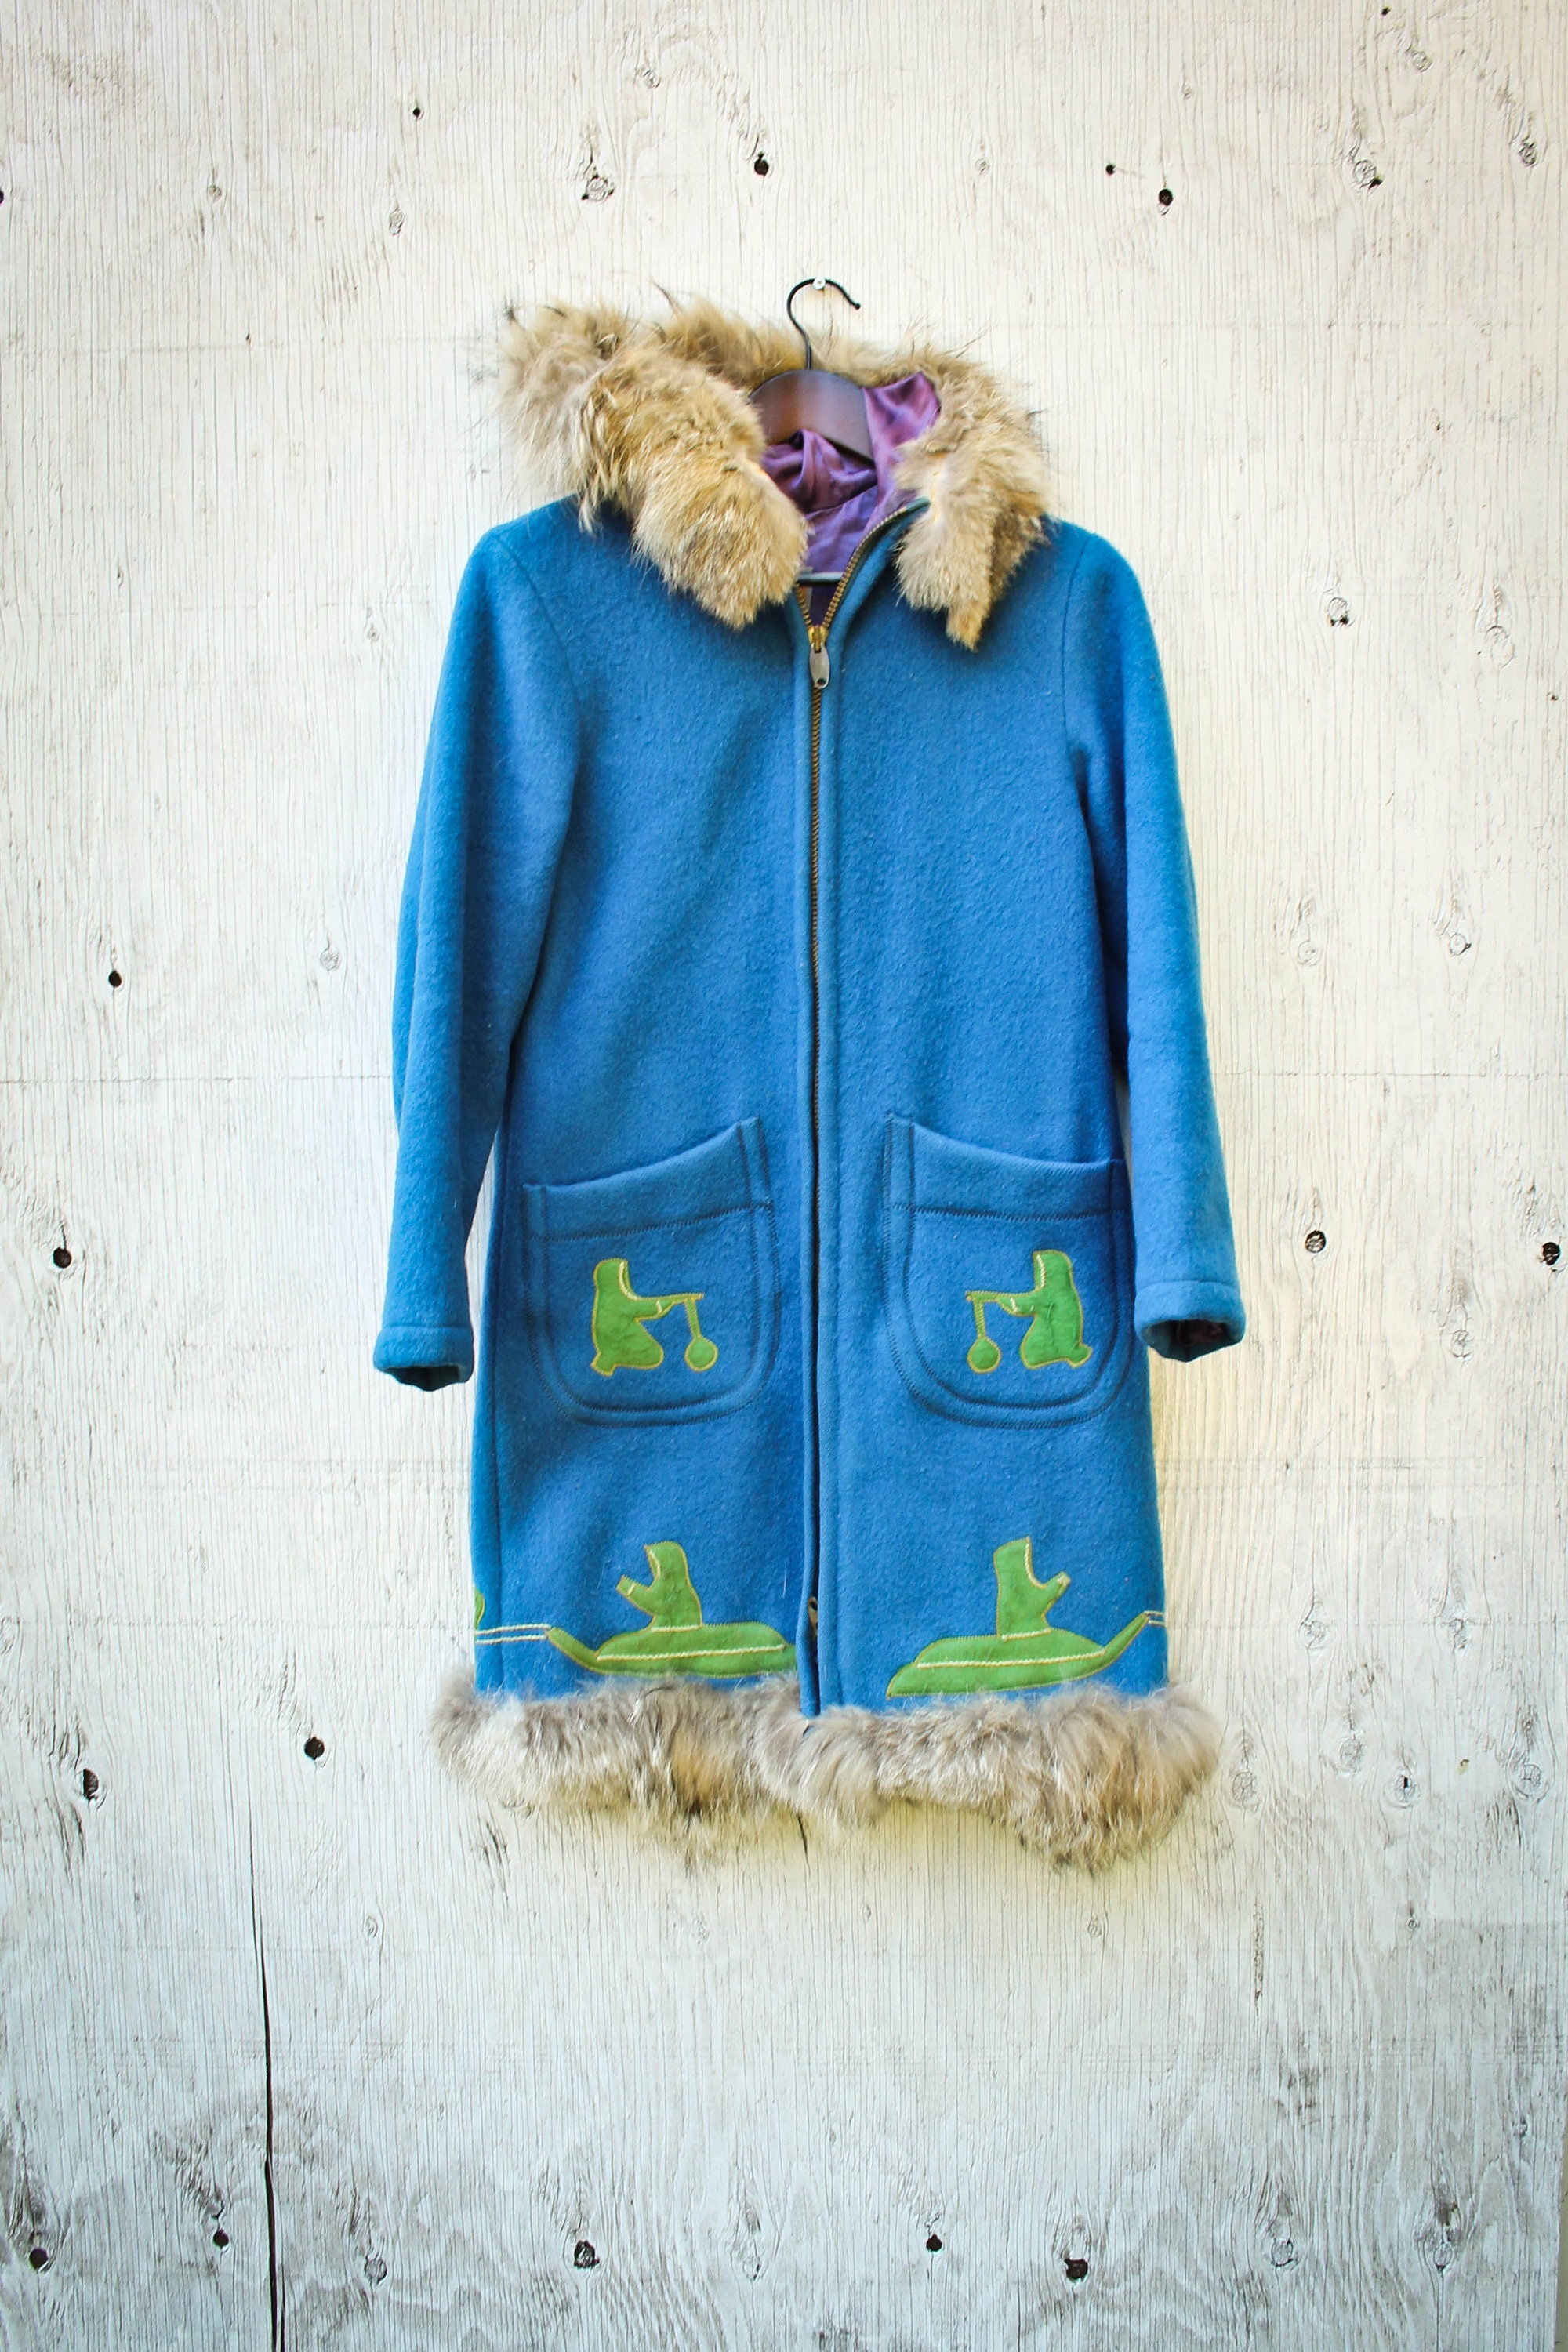 f19ae2aff6f Arctic Inuvik Wool Parka - Small 70s Canadian Arctic Made Wool Jacket - Fur  Collar- Hooded Igloo Coat - Vtg Inuit Style Parka